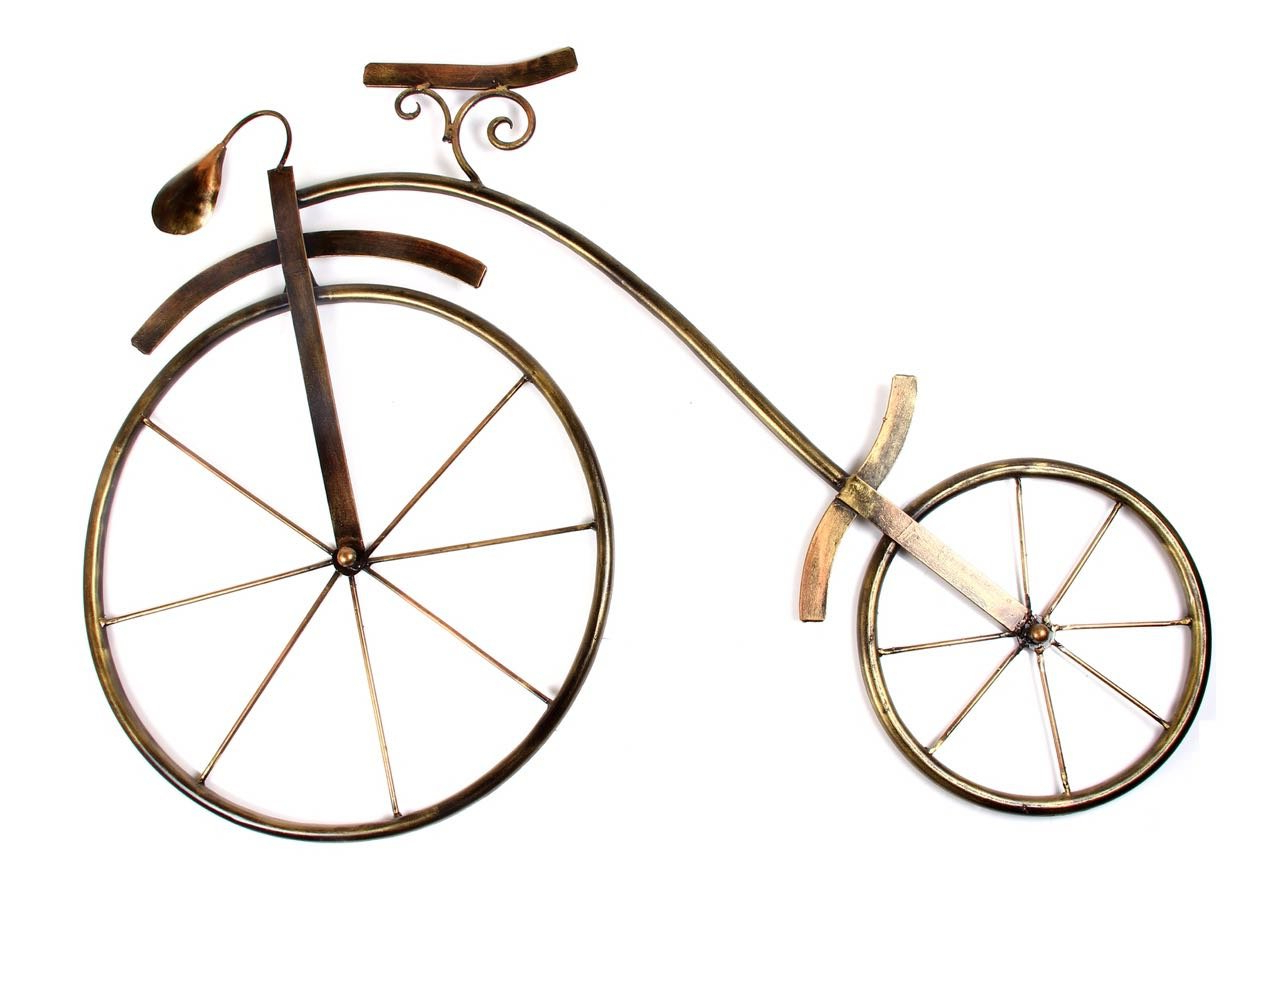 Metal Bicycle Wall Decor With Regard To 2019 Buy Shivay Arts Contemporary Metal Iron Cycle Bicycle Wall Decor (View 16 of 20)